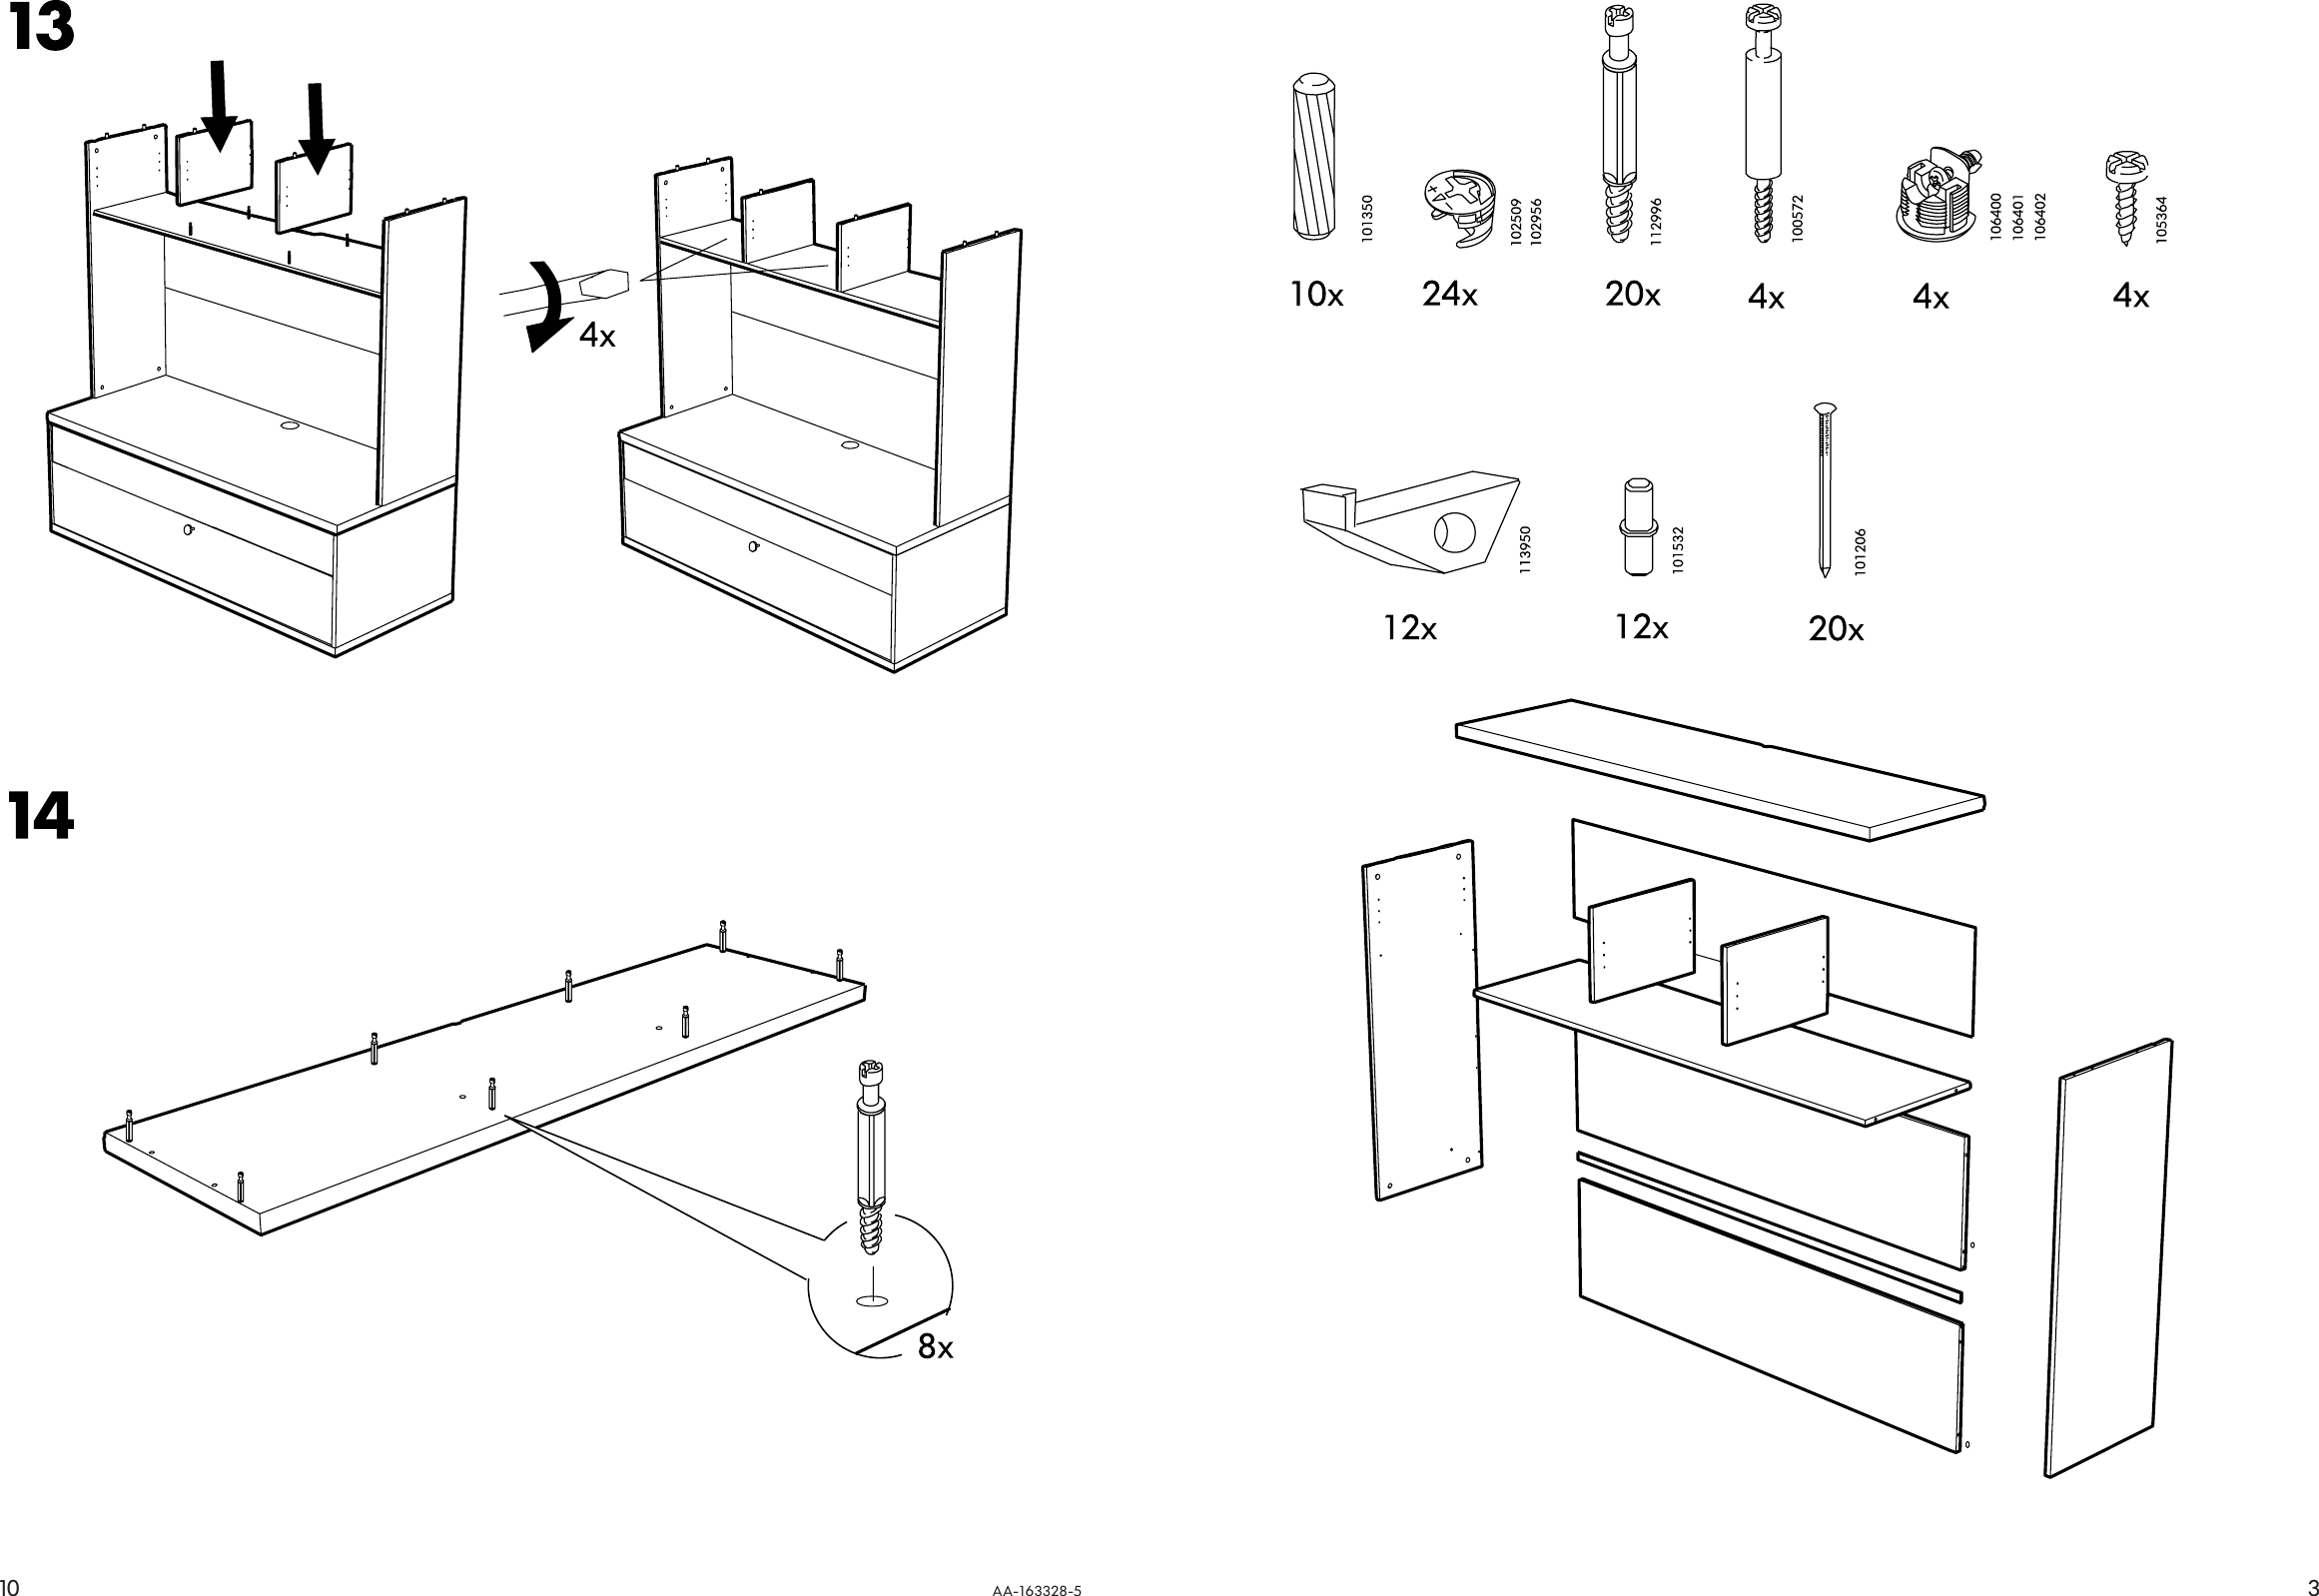 Page 3 of 6 - Ikea Ikea-Bonde-Add-On-For-Tv-Unit-57X40-Assembly-Instruction-3  Ikea-bonde-add-on-for-tv-unit-57x40-assembly-instruction